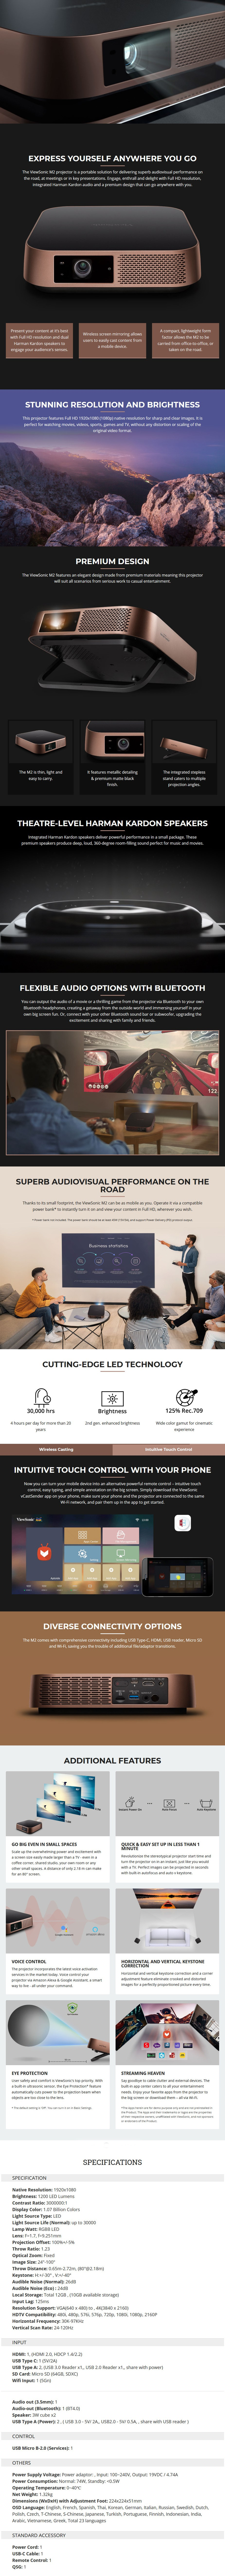 ViewSonic M2 Full HD Smart Portable LED Projector with Harman Kardon Speakers - Overview 1